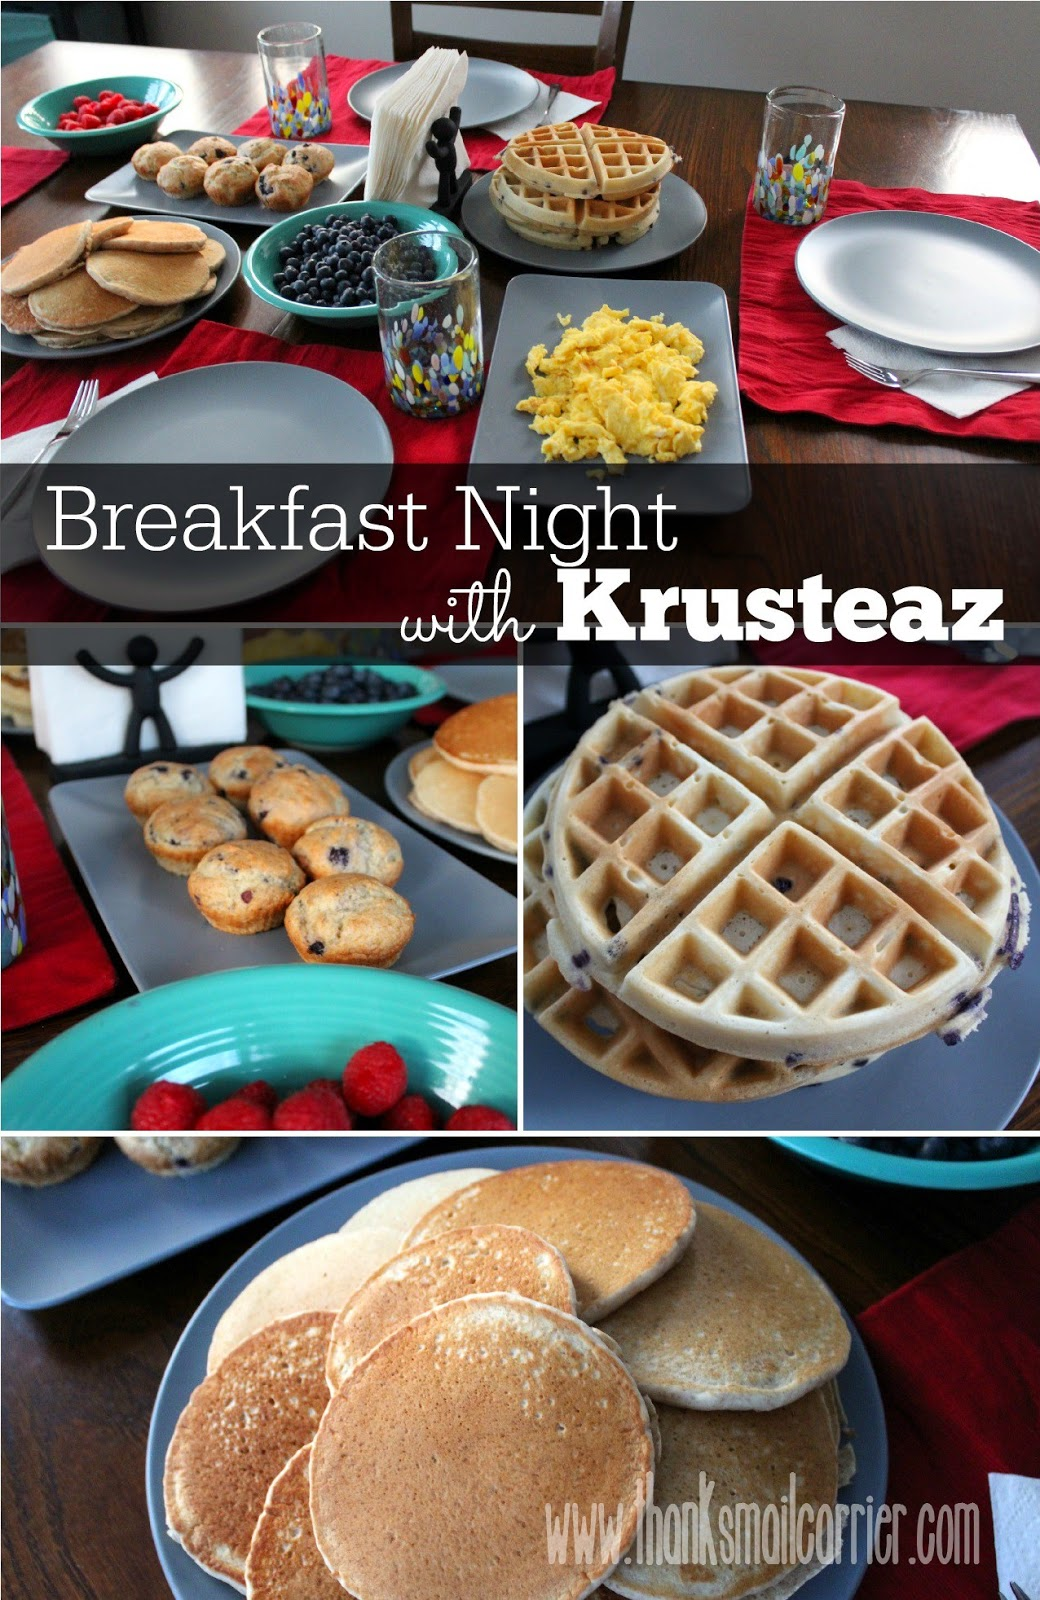 Krusteaz Breakfast Night